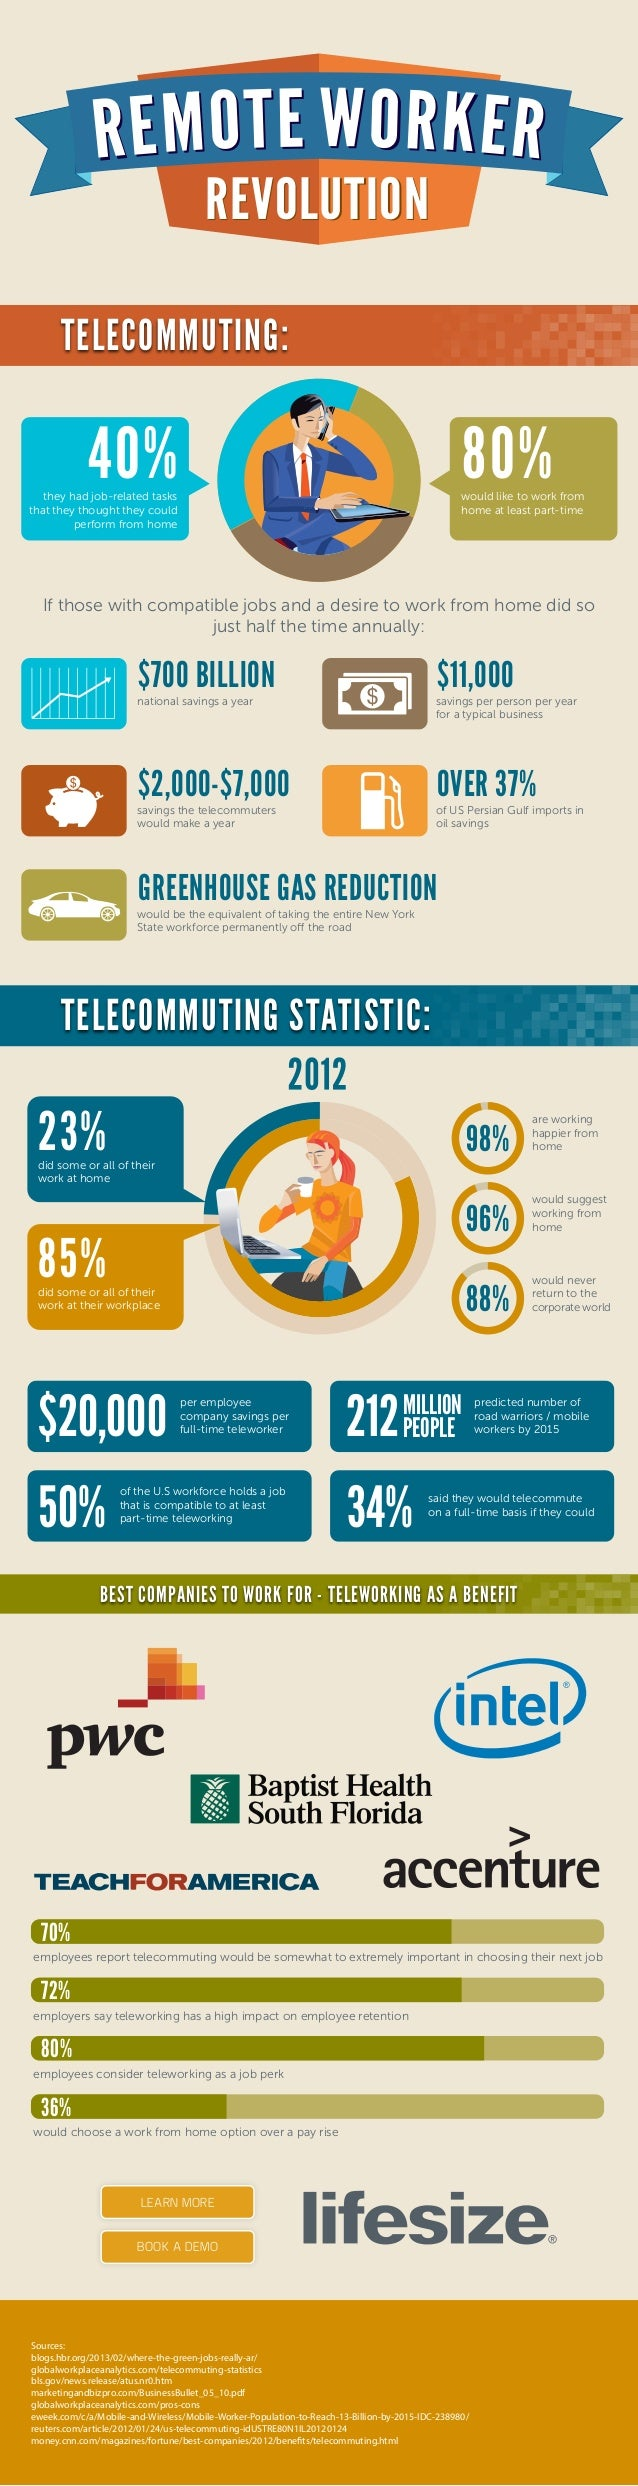 benefits of telecommuting Telecommuting also benefits a company's bottom line by positively impacting employee engagement even after onboarding, the majority of employees in flexibility programs report higher engagement.